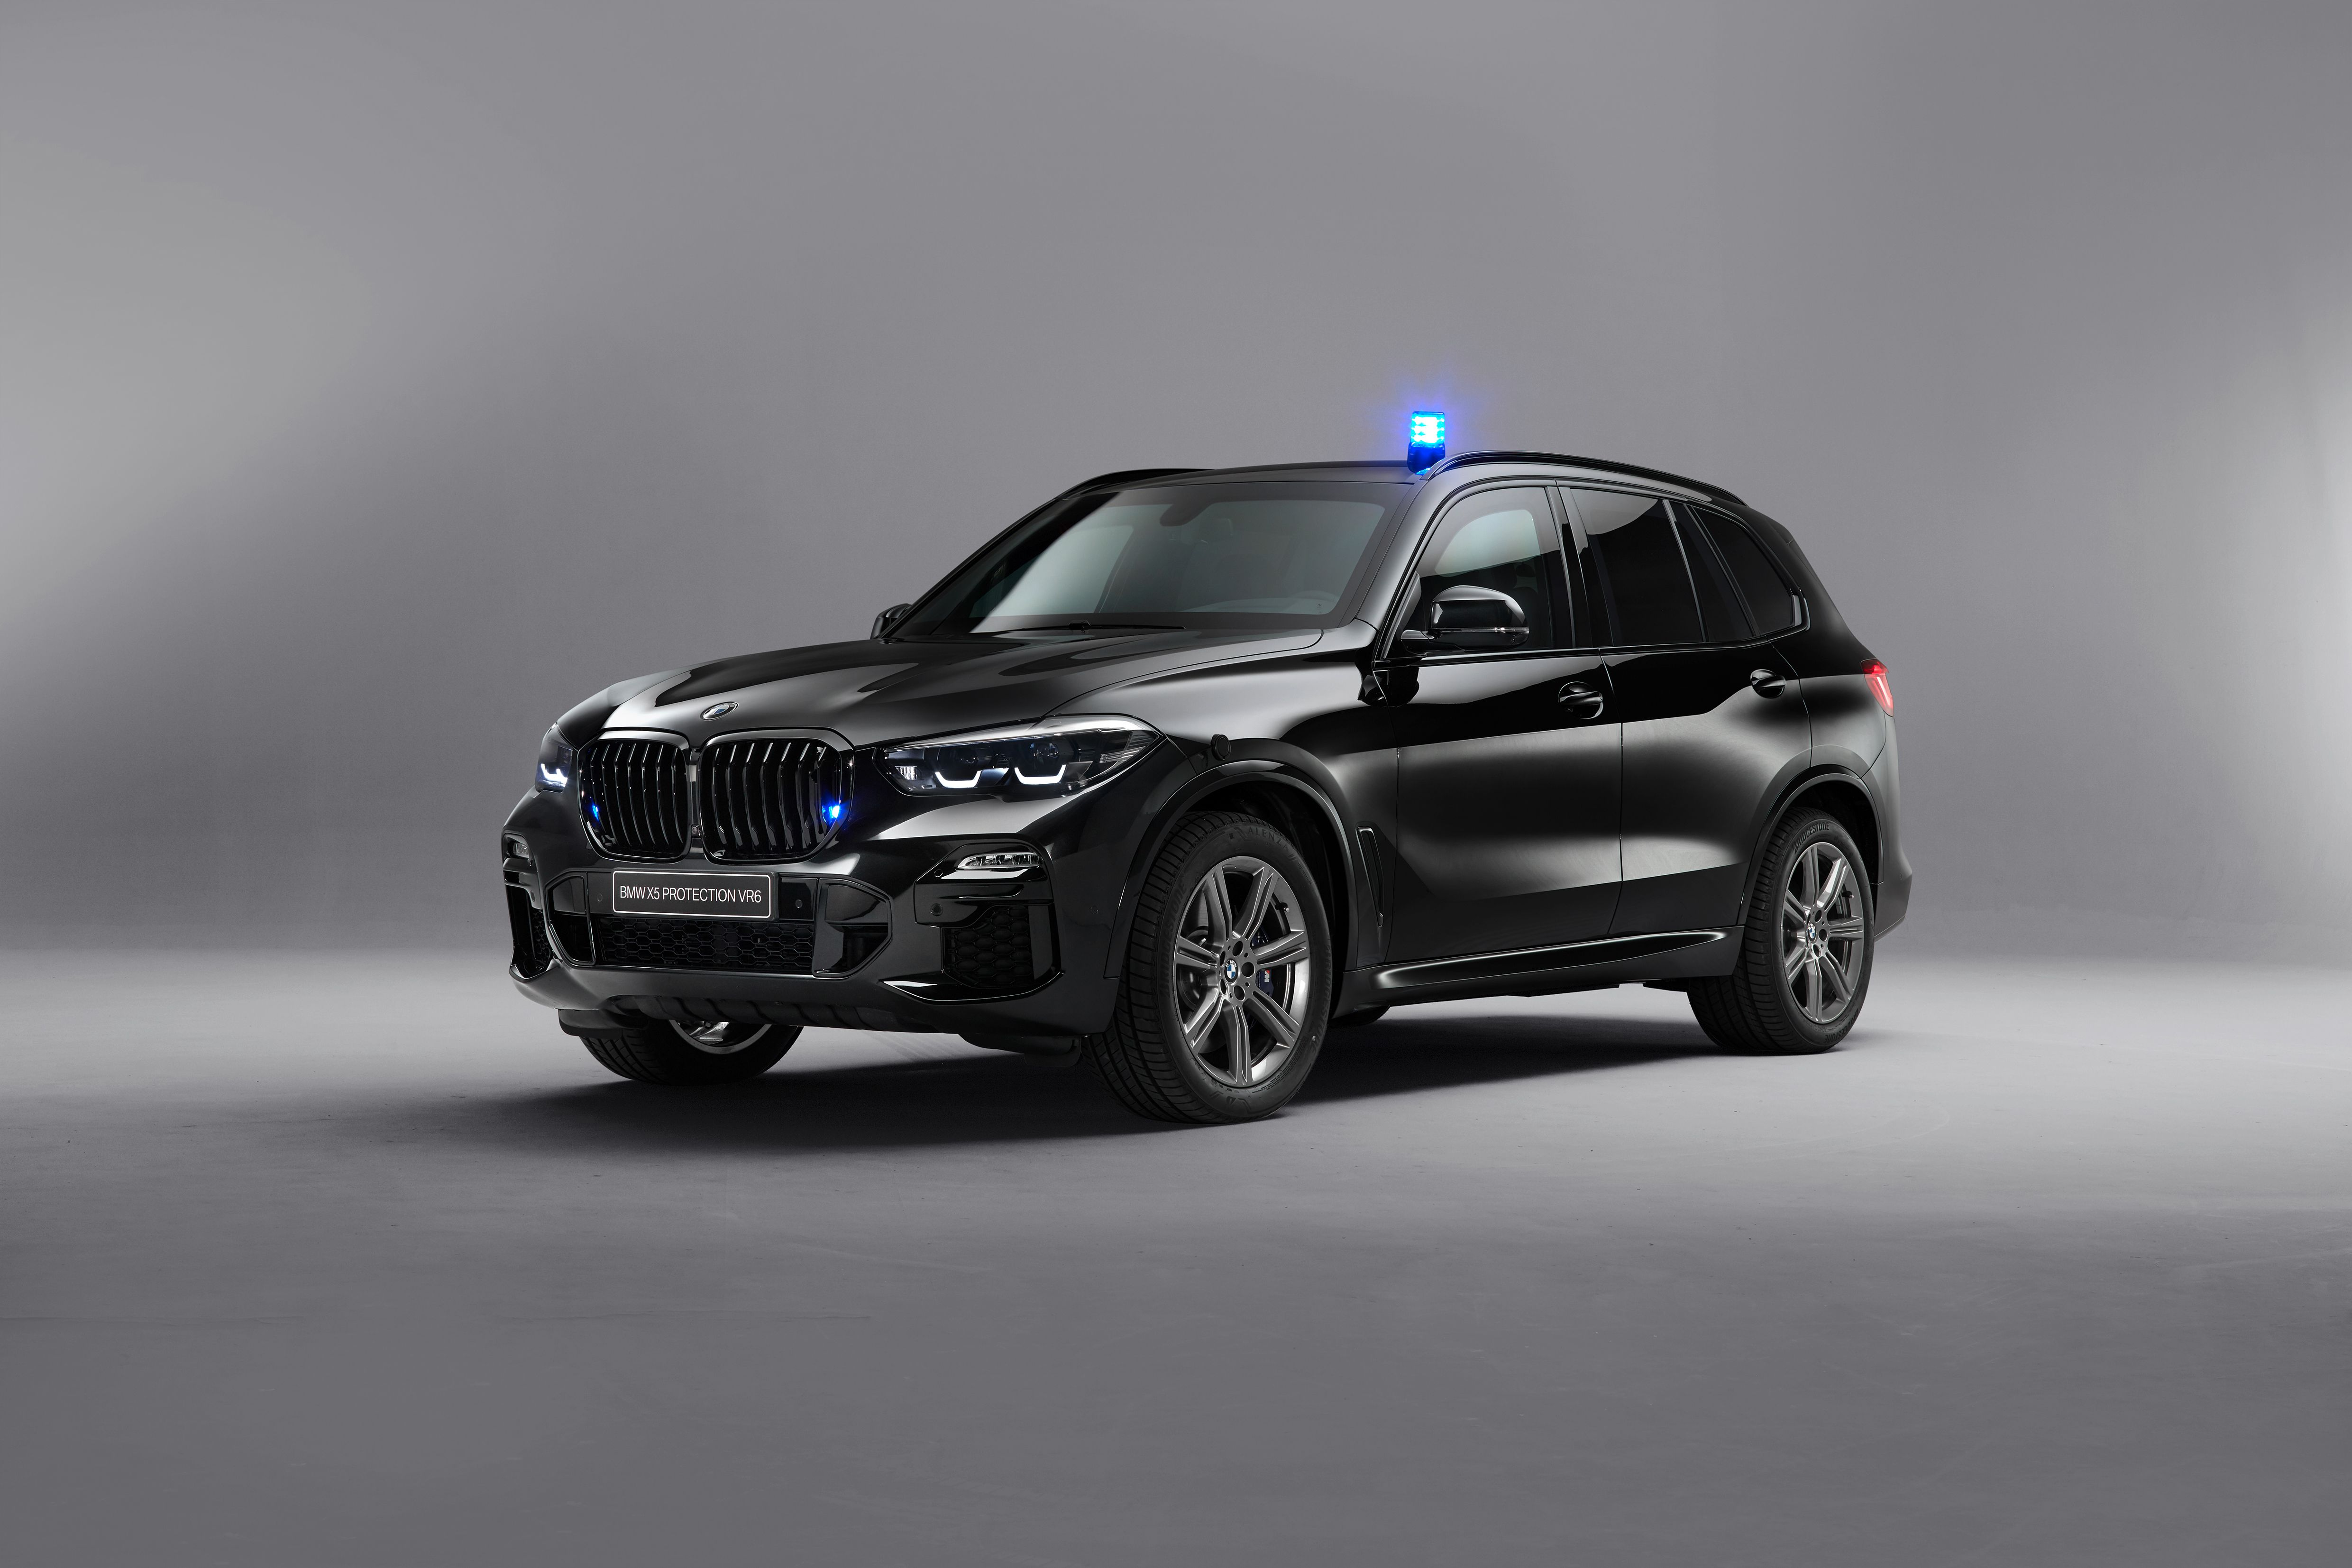 This Armored BMW X5 Can Withstand AK-47 Bullets